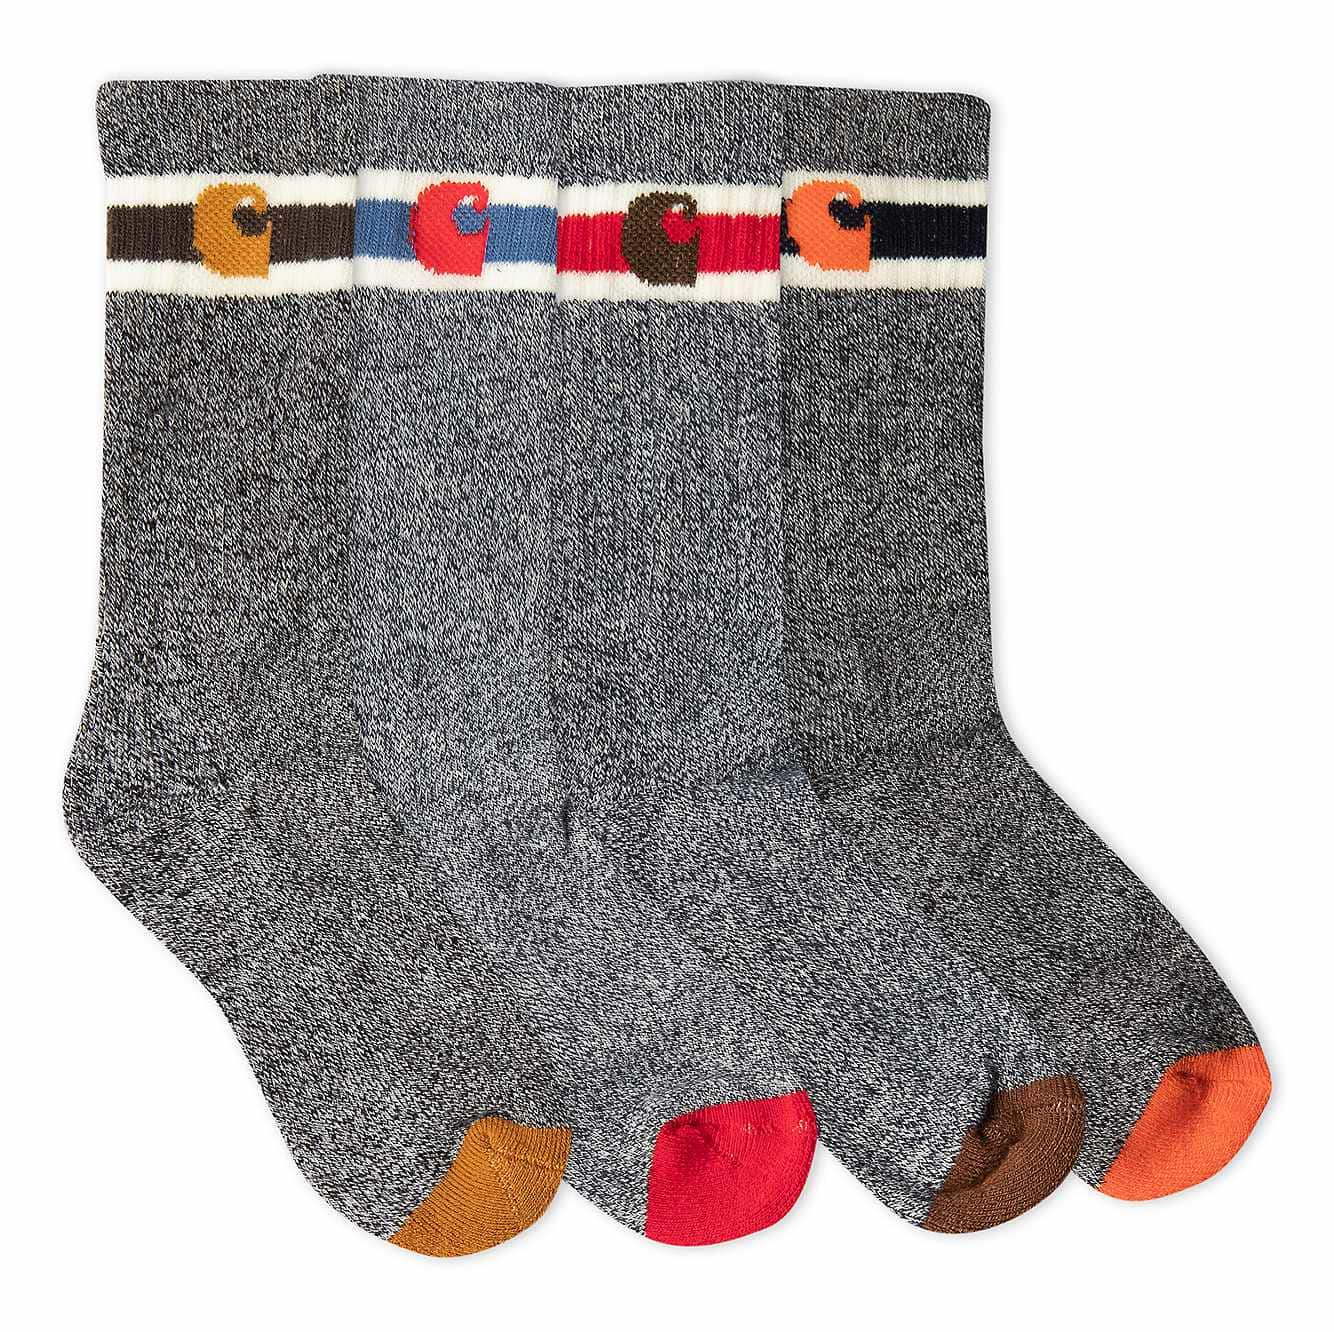 Picture of Camp Crew Sock 6 Pack in Assorted